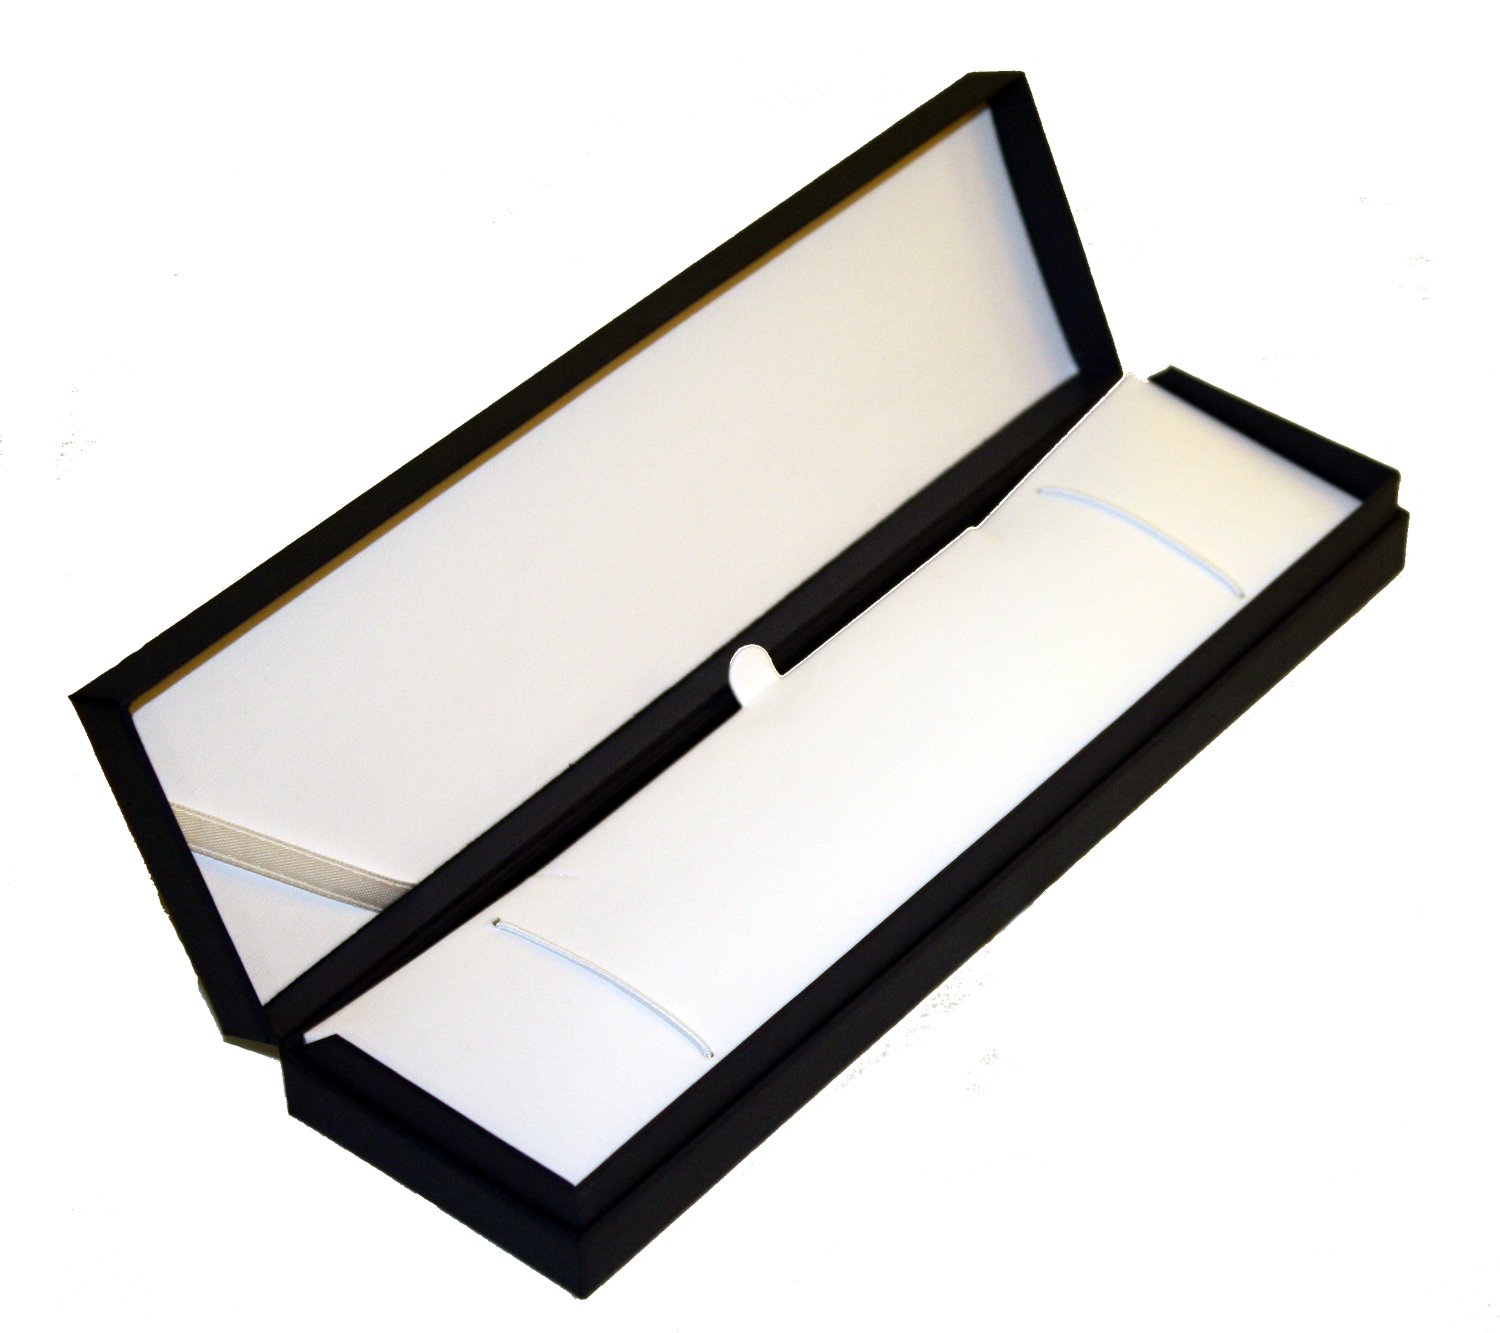 Matte Black Bracelet/Watch Display and Gift Box, Hinged Lid with Insert. 9.75' x 3.00' x 1.50' Hinged Lid with Insert. 9.75 x 3.00 x 1.50 Generic